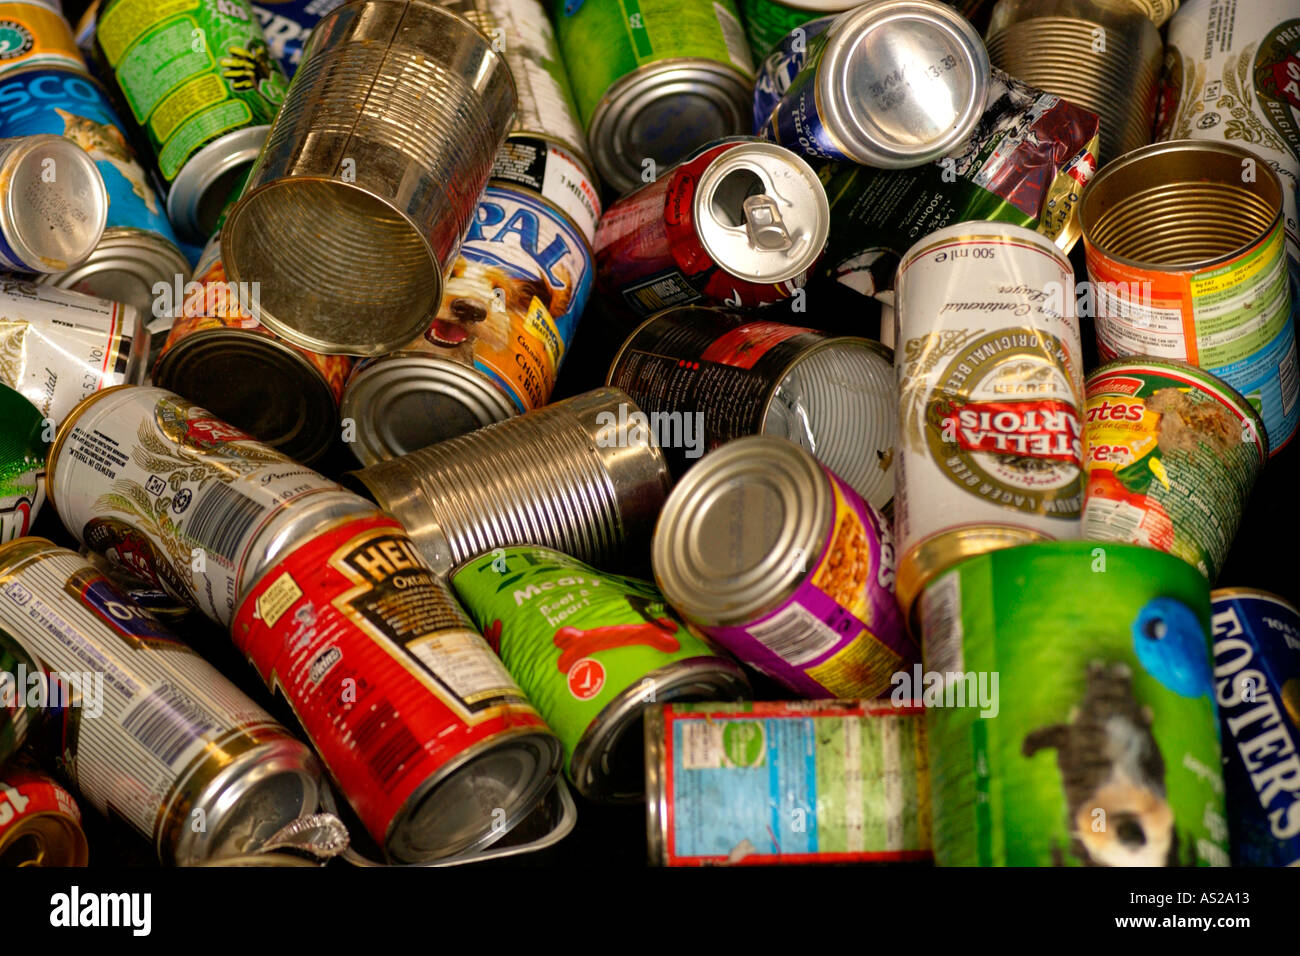 Metal cans collected by Wastesavers community recycling group from households in Newport South Wales Gwent UK - Stock Image